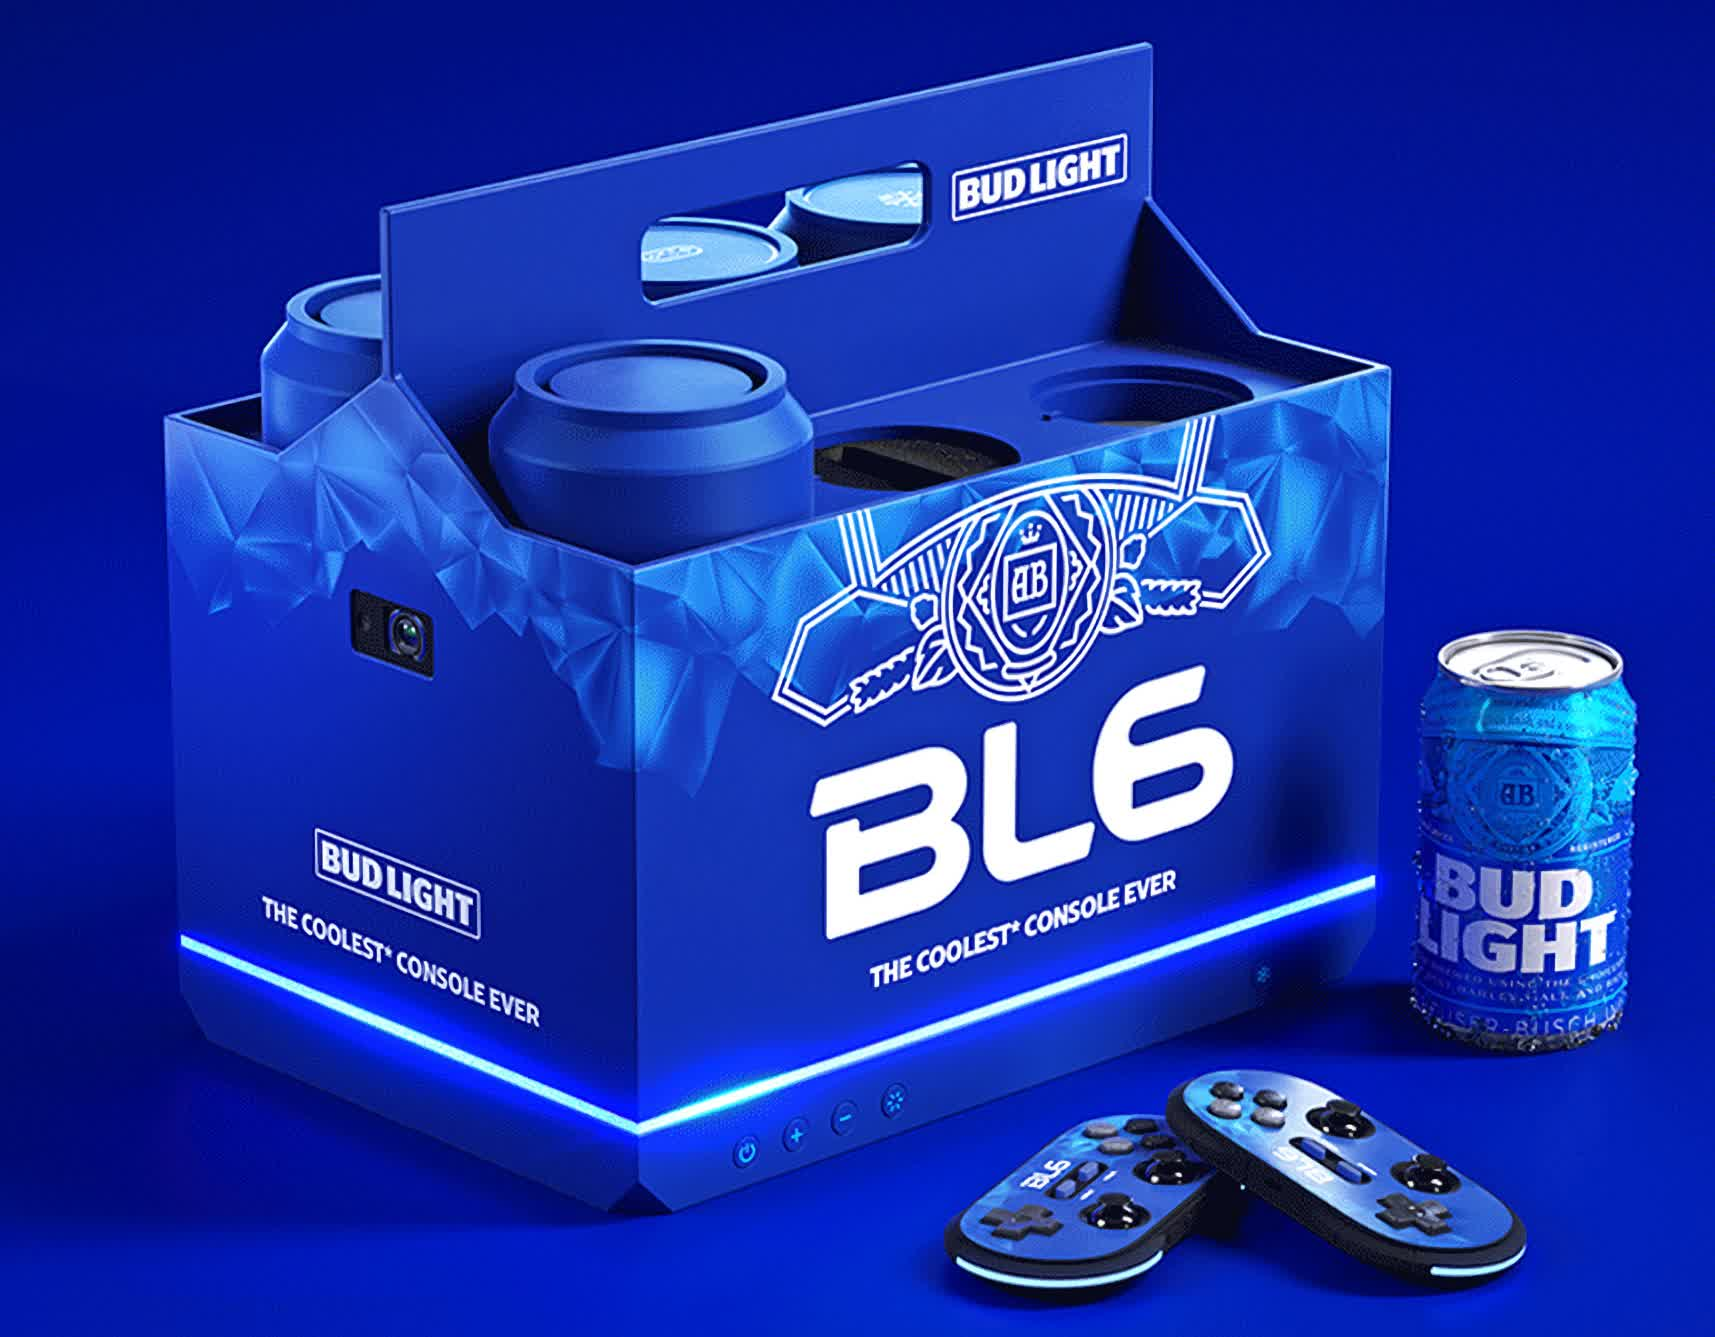 Bud Light's BL6 is a mini PC shaped like a six-pack that actually plays games